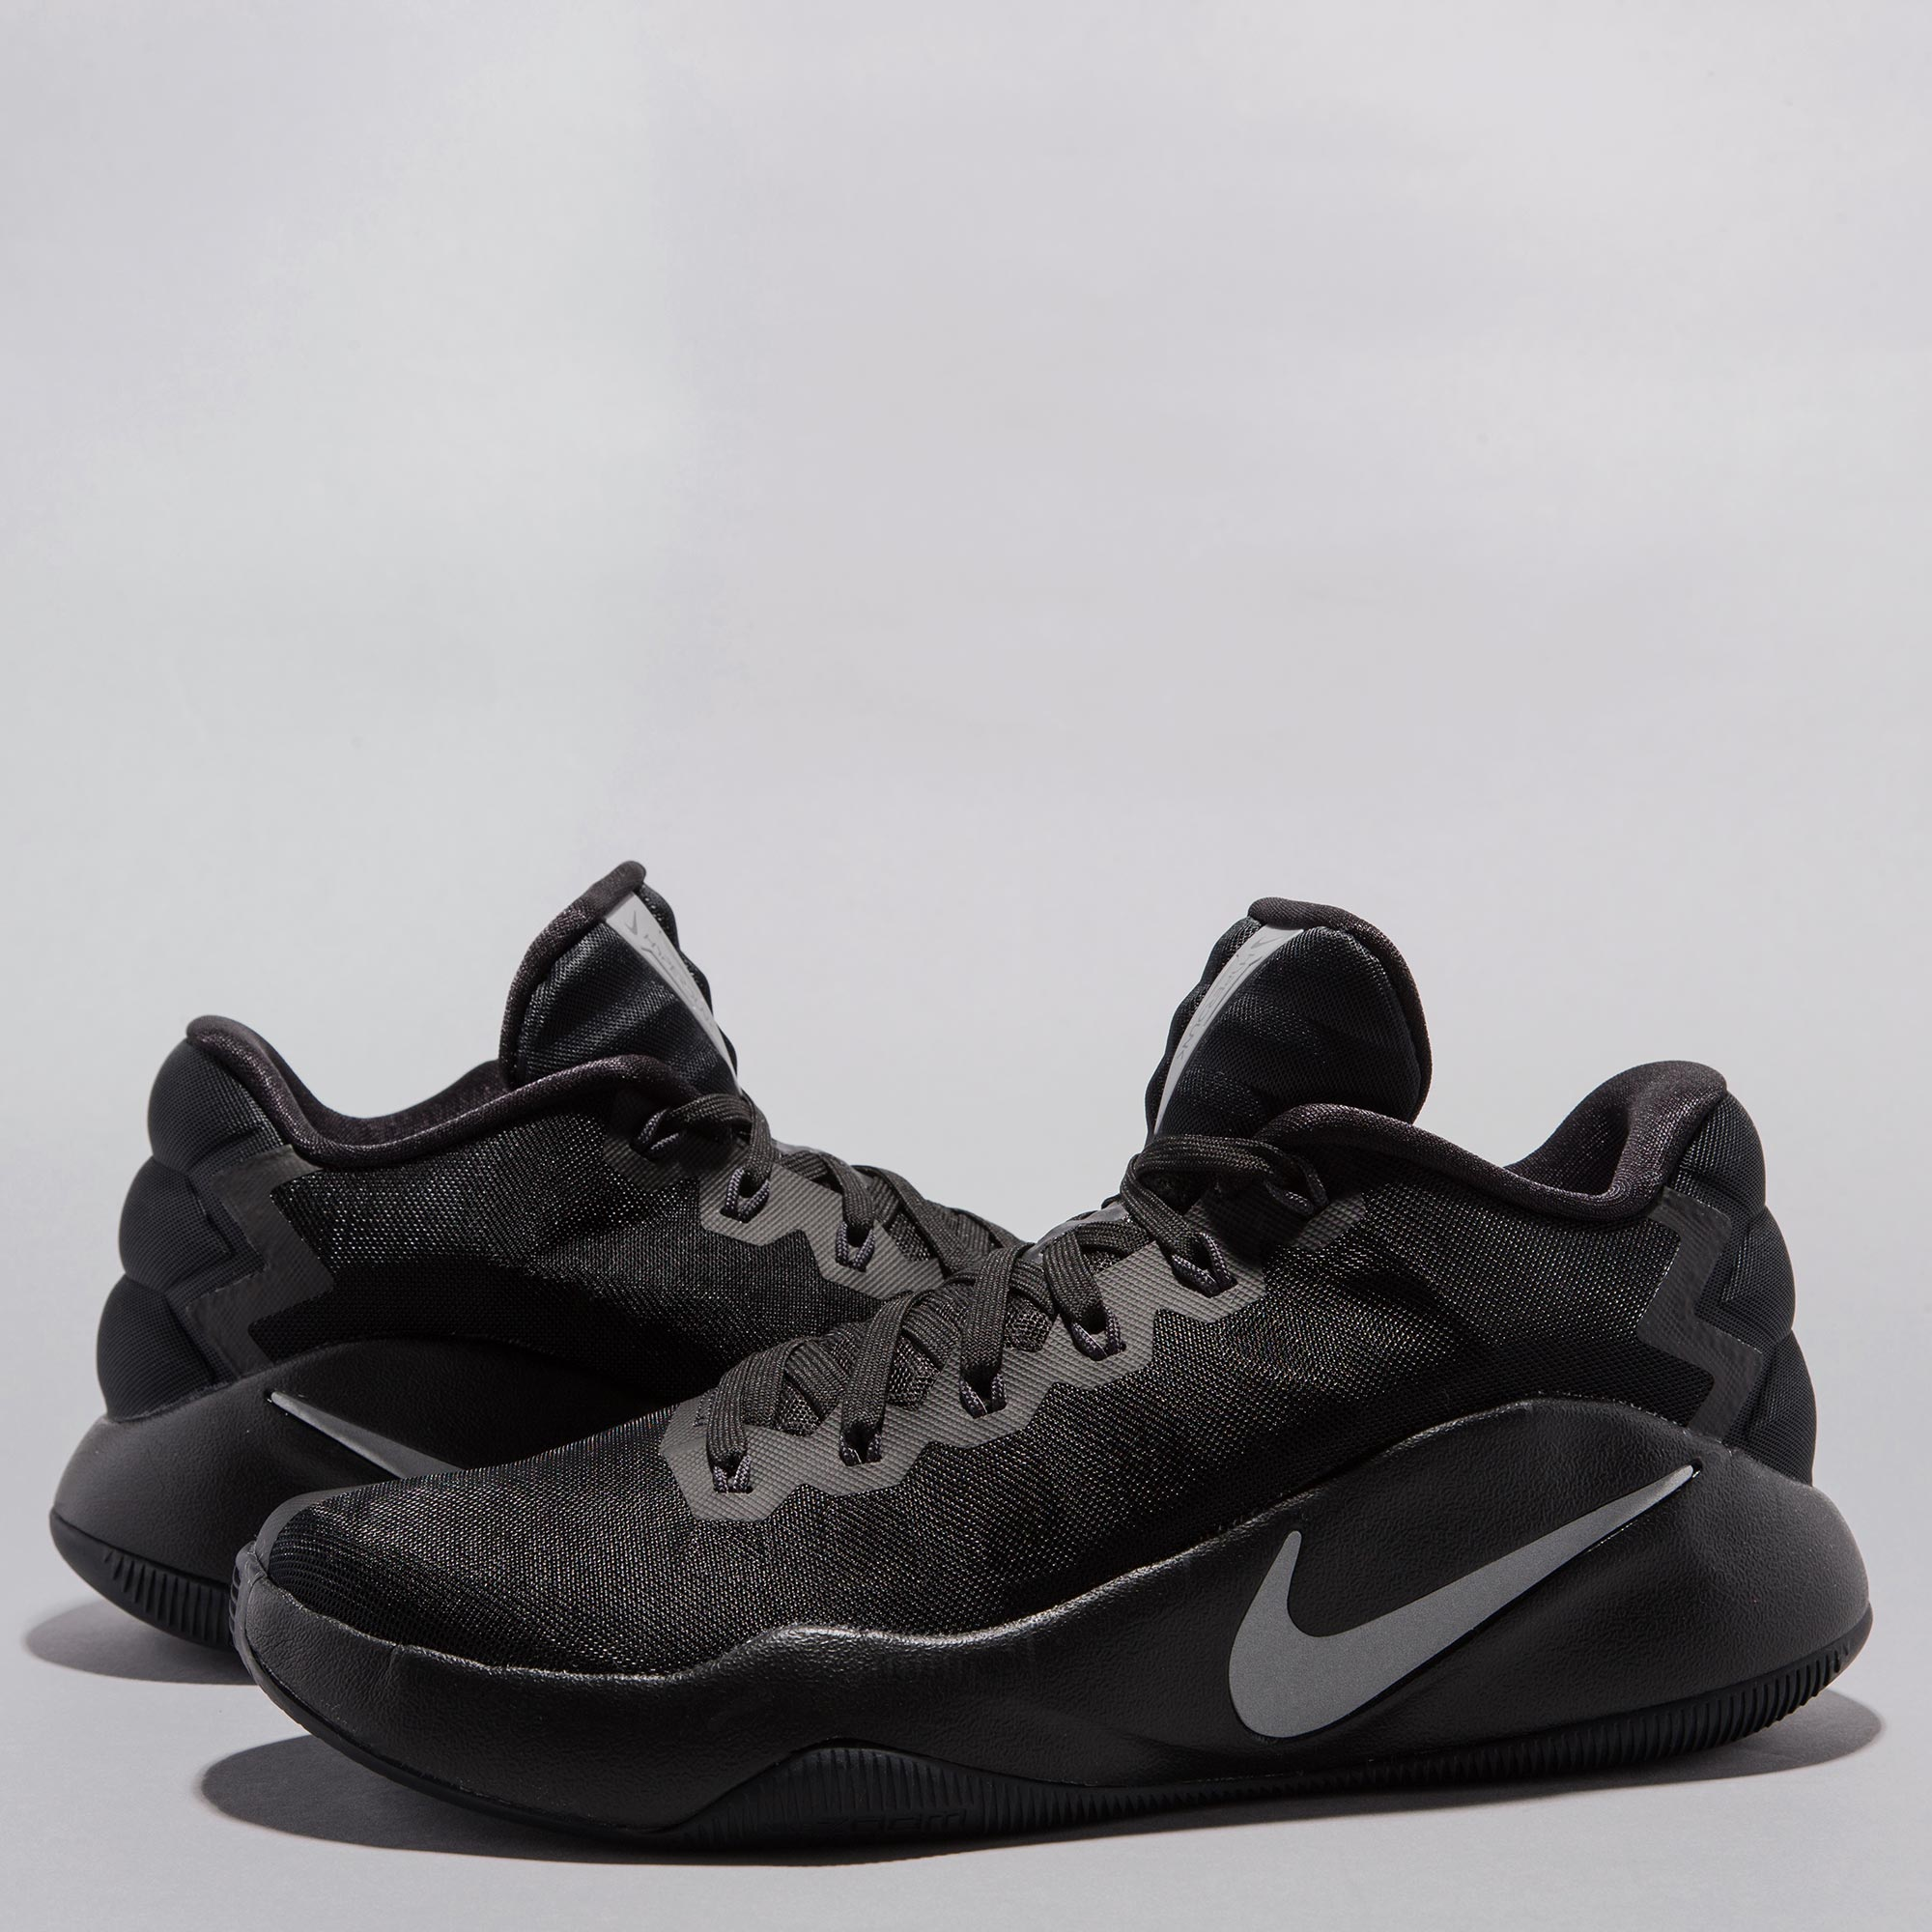 Nike Hyperdunk 2016 Low Basketball Shoe - Black/Metallic Silver